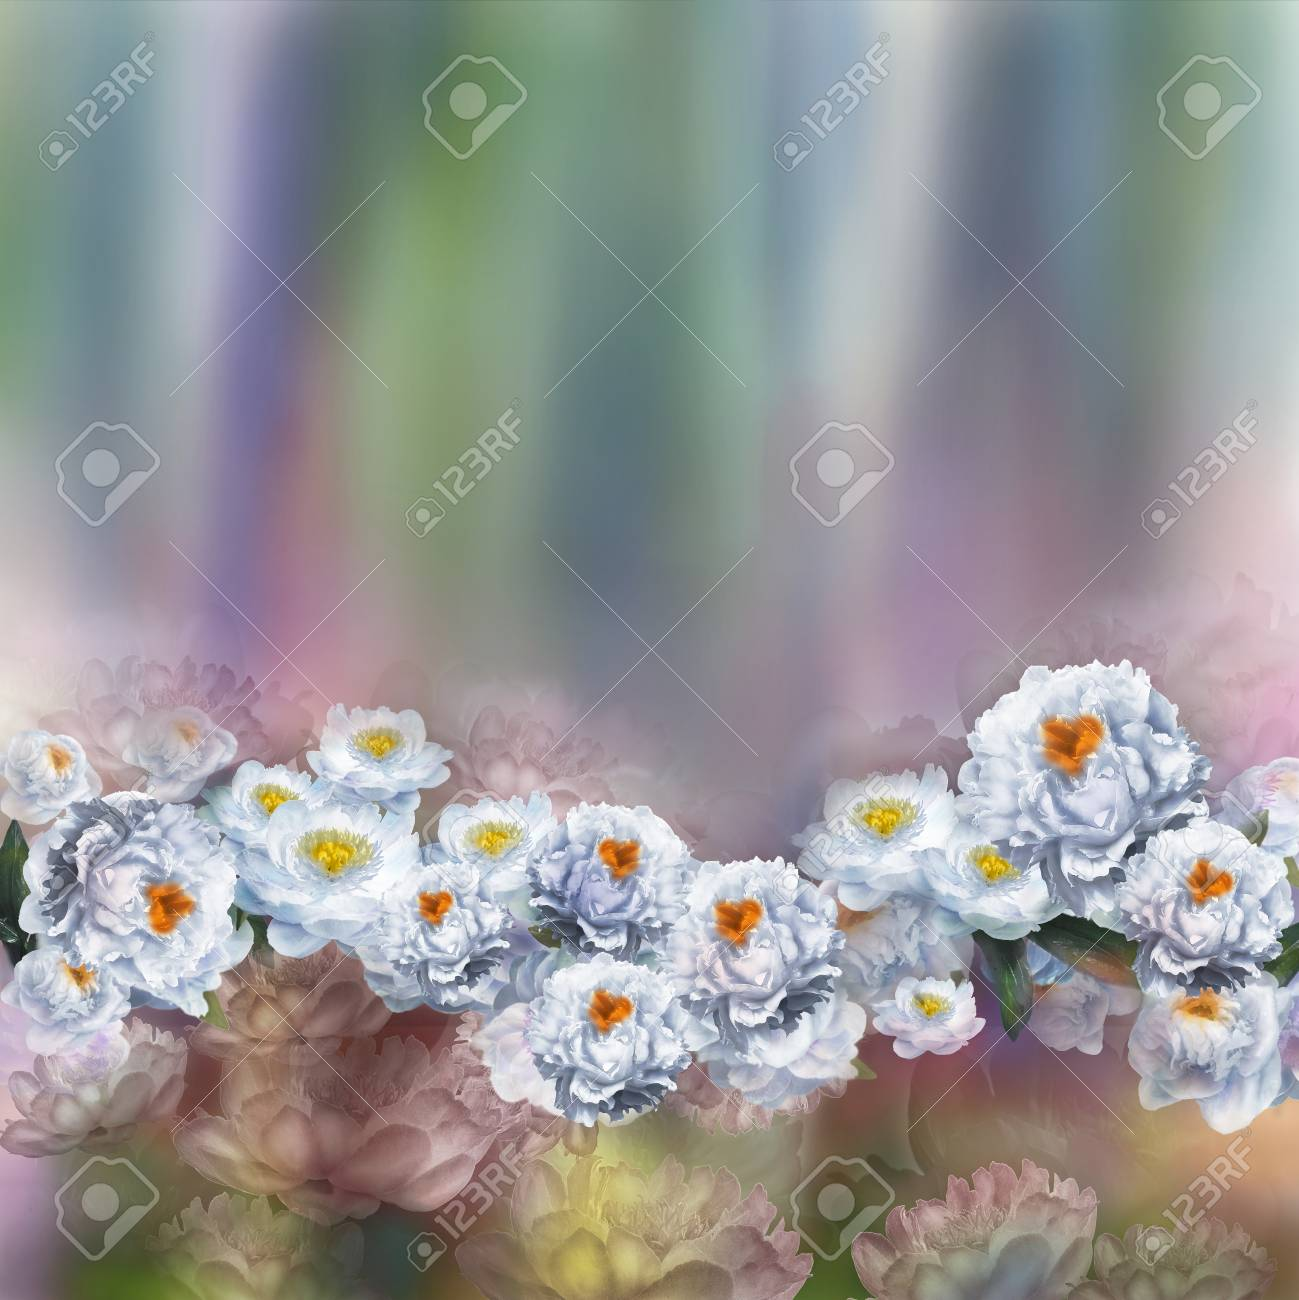 Floral pattern on seamless cloth fabric flower bouquet stock floral pattern on seamless cloth fabric flower bouquet stock photo 79670407 izmirmasajfo